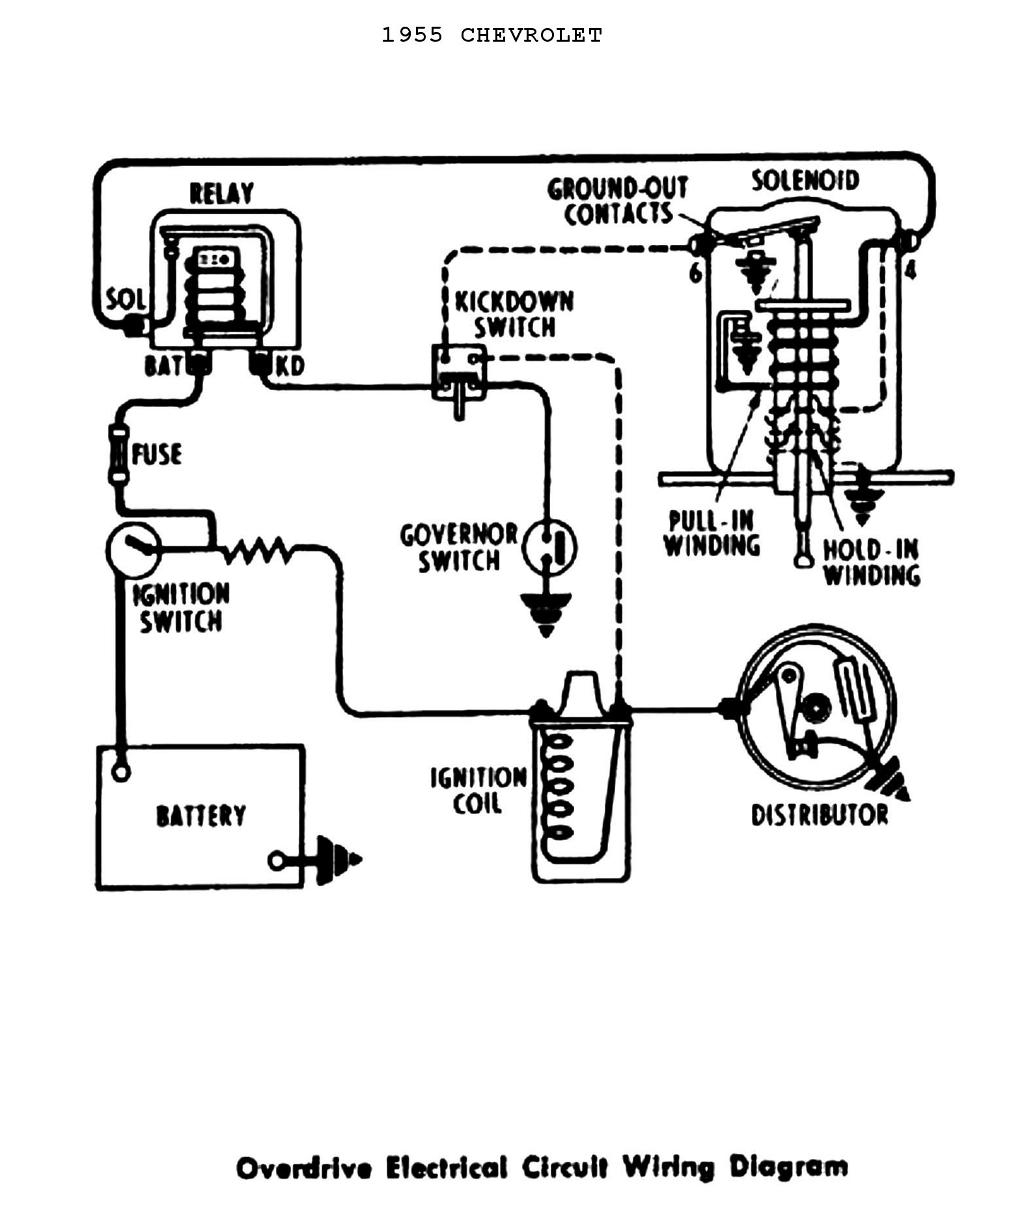 1972 vw relay diagram